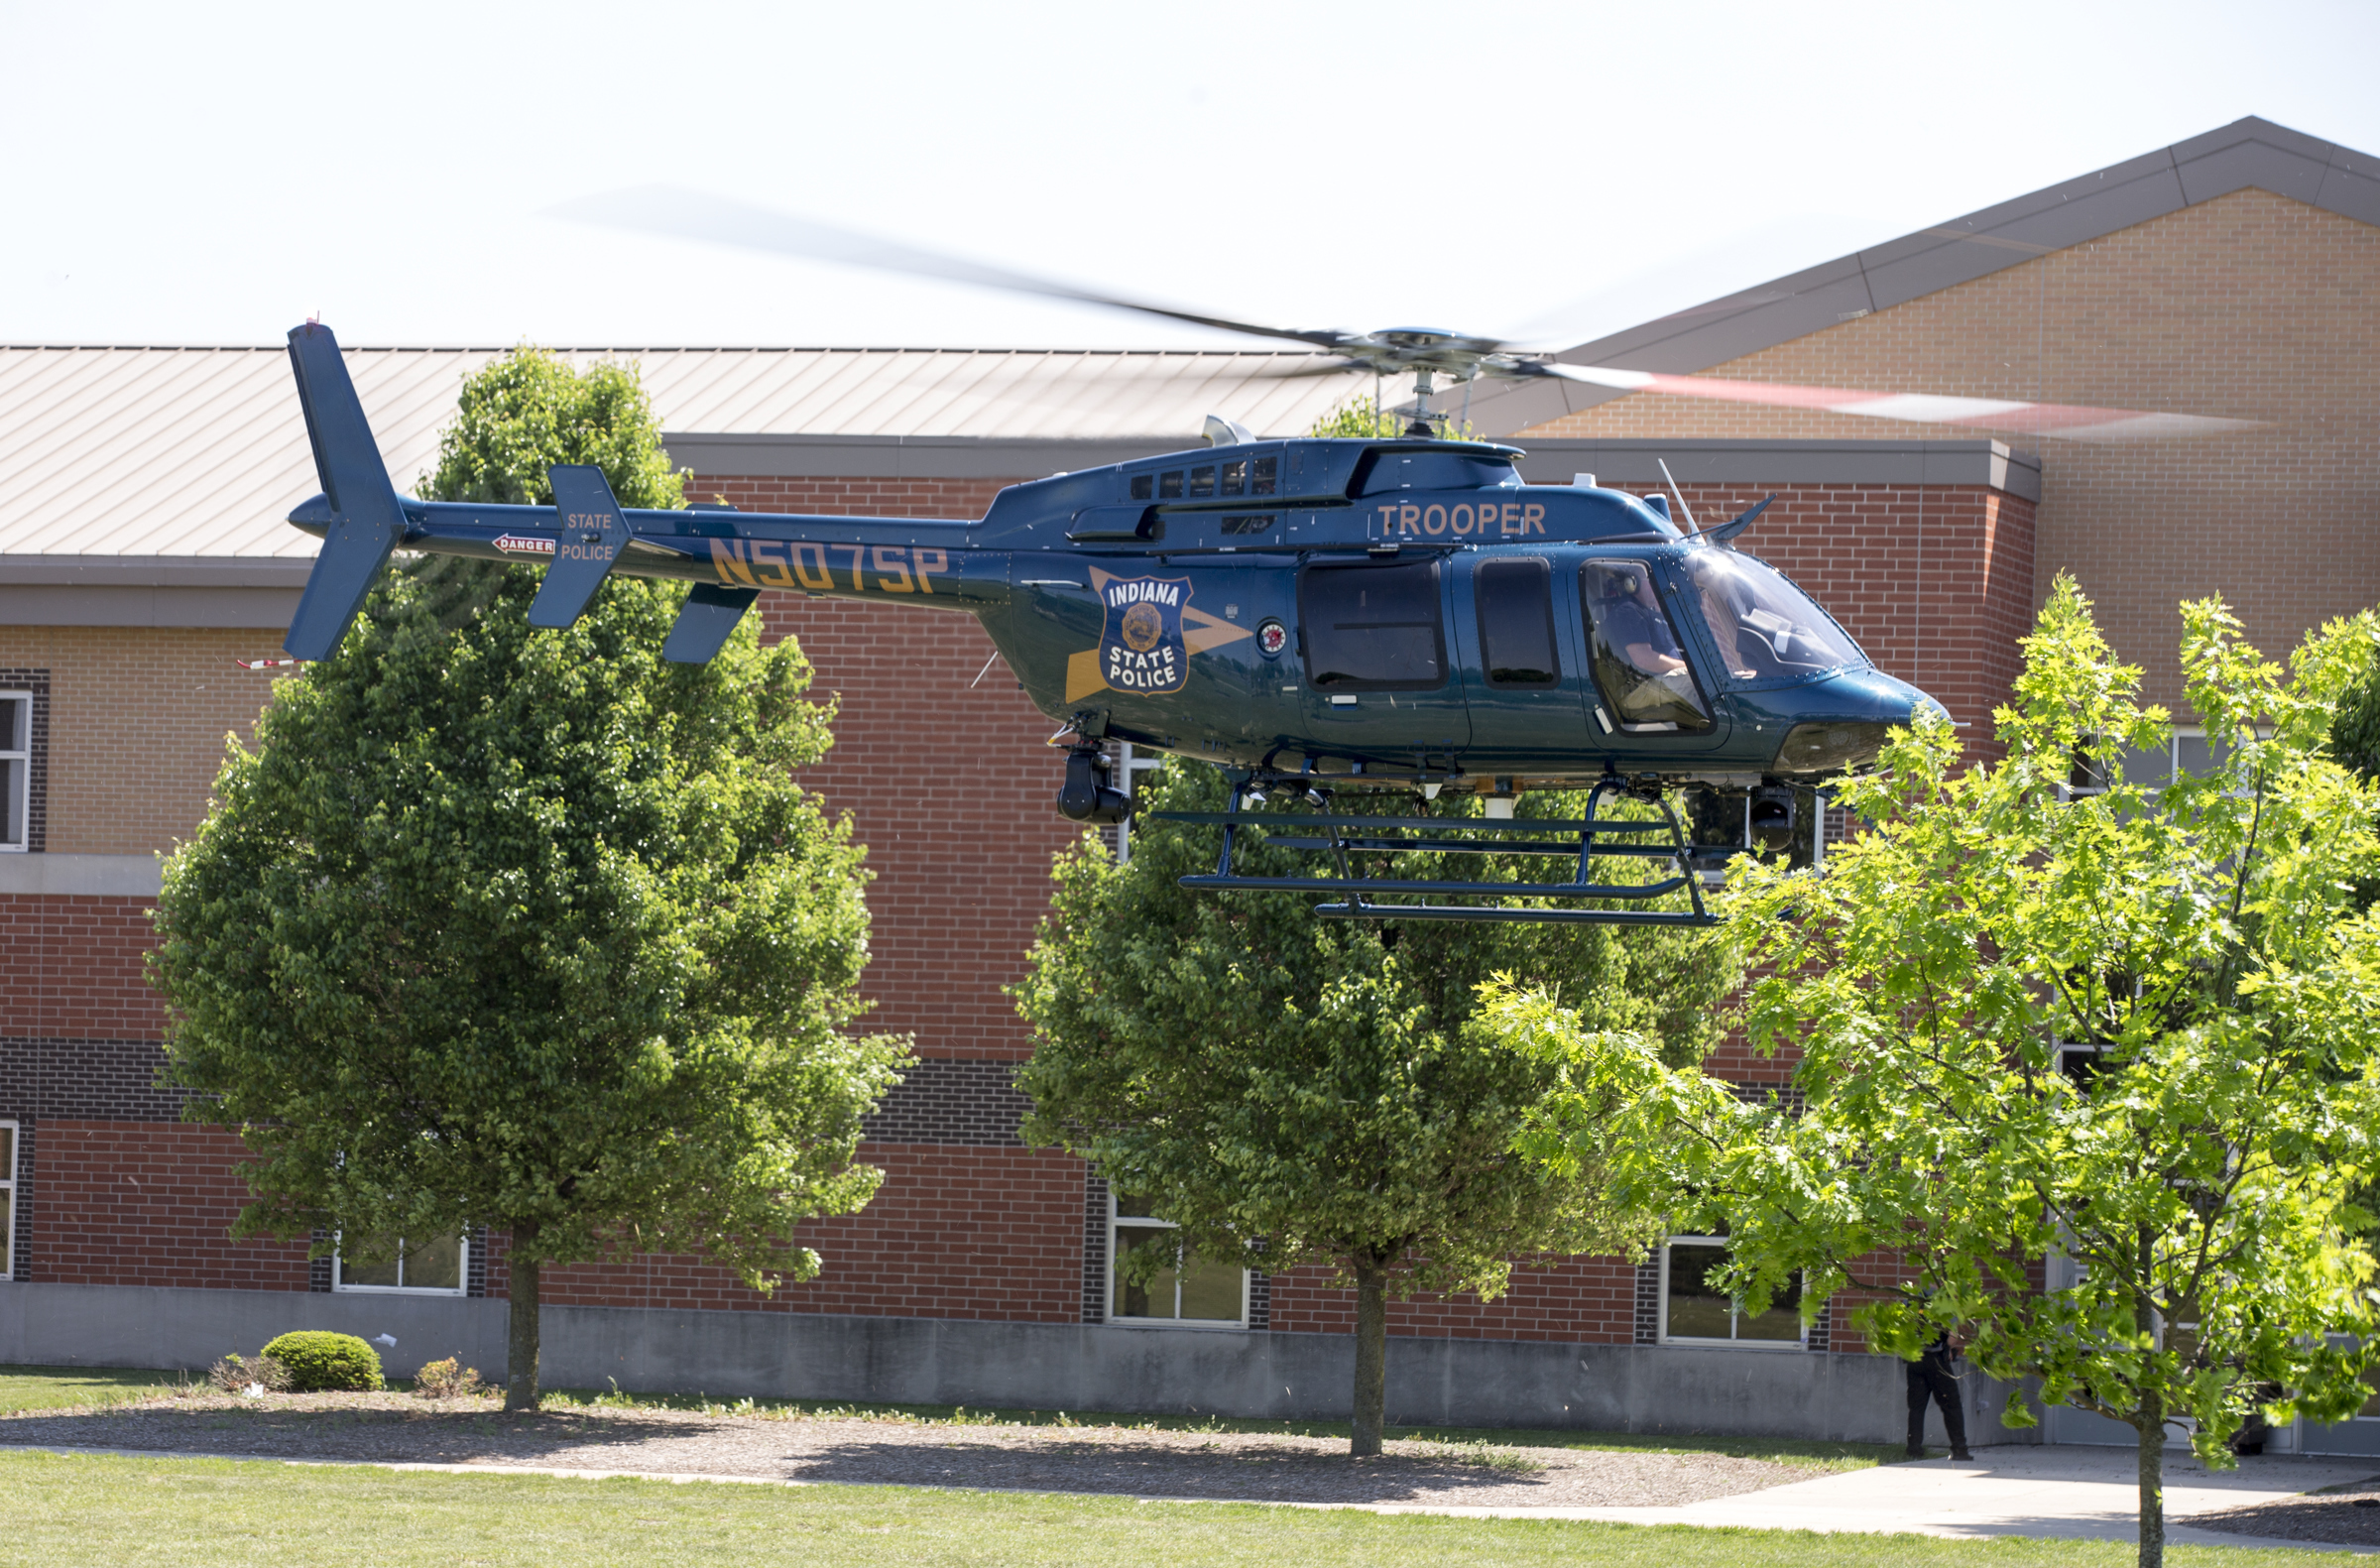 An Indiana State Police helicopter lifts off after a shooting at Noblesville West Middle School in Noblesville, Ind., on Friday, May 25, 2018. A male student opened fire at the suburban Indianapolis school wounding another student and a teacher before being taken into custody, authorities said.